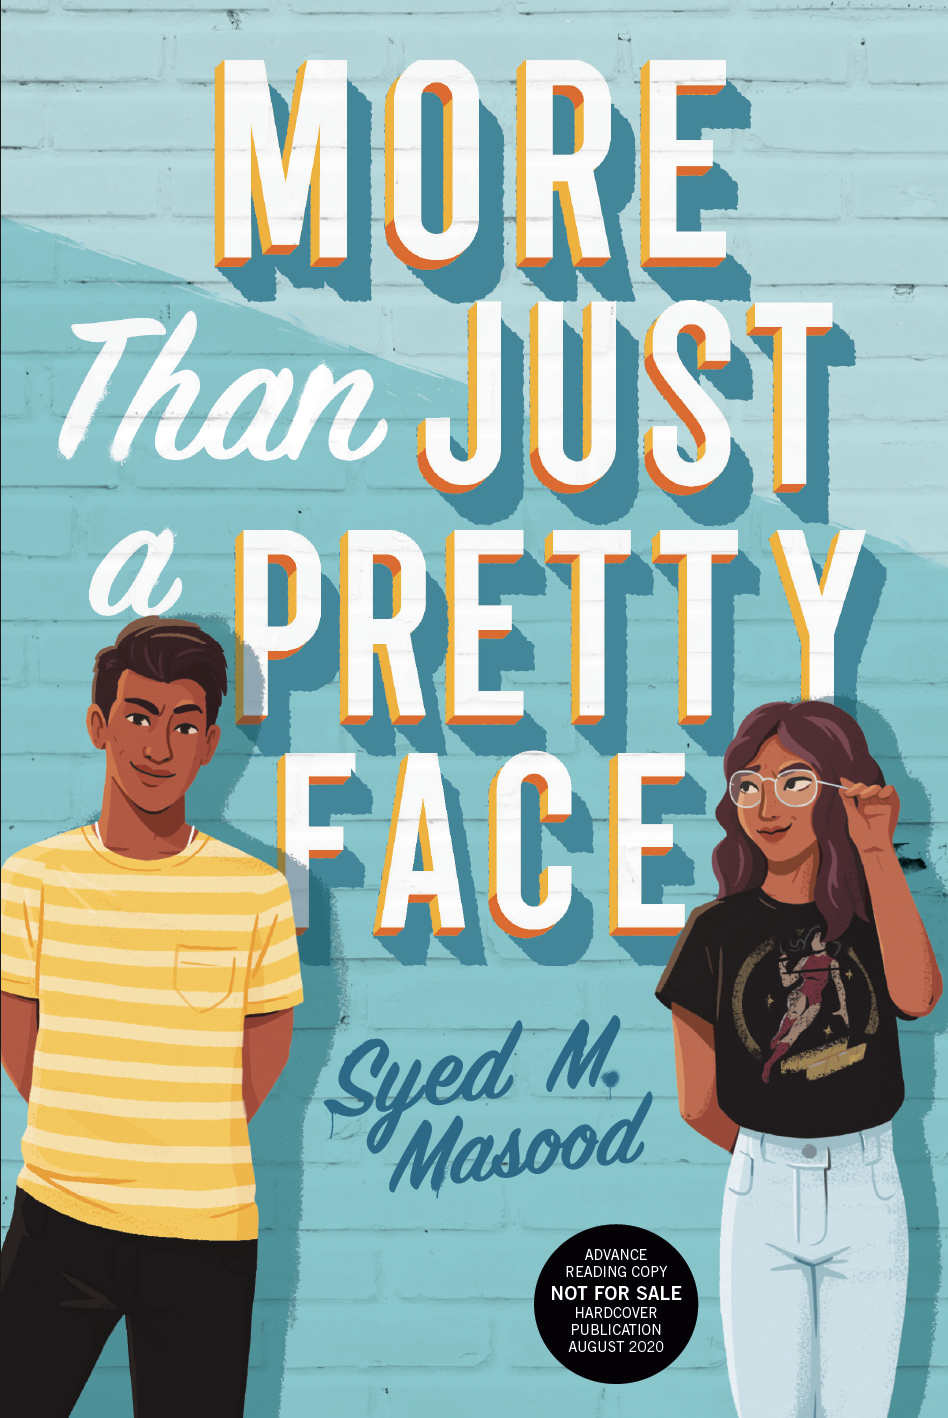 ARC Cover for MORE THAN JUST A PRETTY FACE